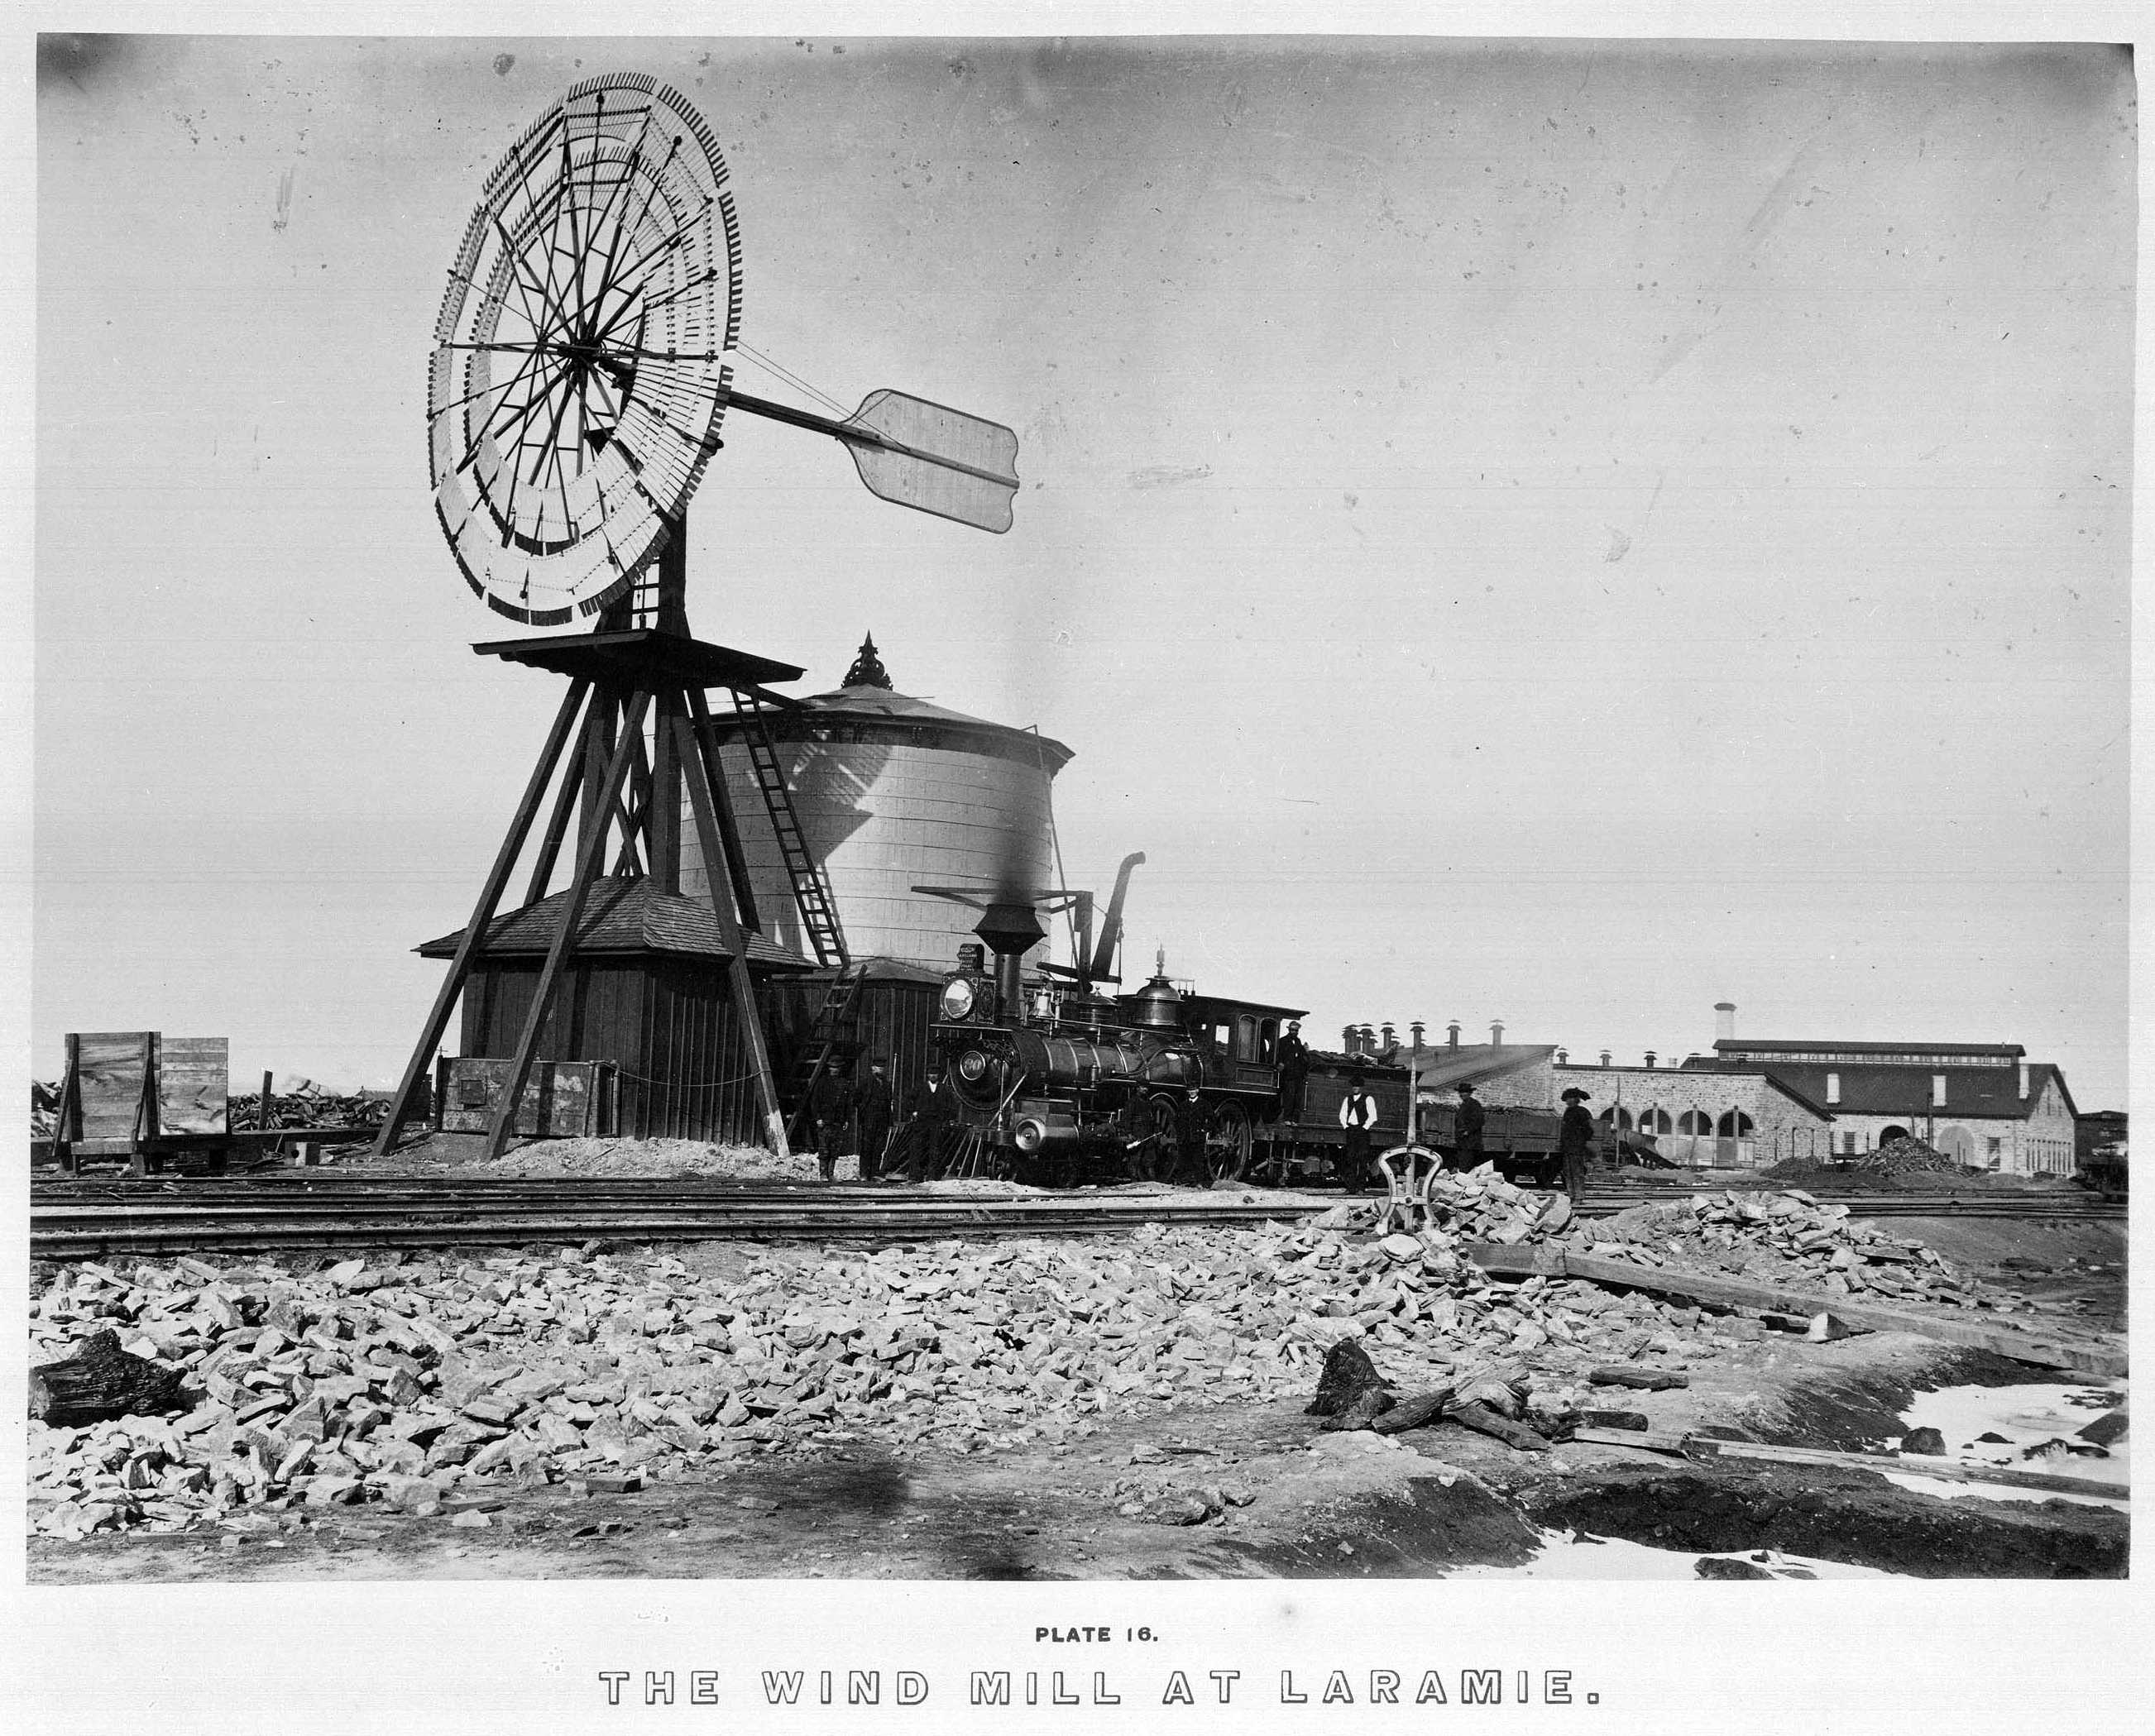 Andrew J. Russell, 'Wind Mill at Laramie,' 1868, from The Great West Illustrated. Huntington Library, Art Collections, and Botanical Gardens.